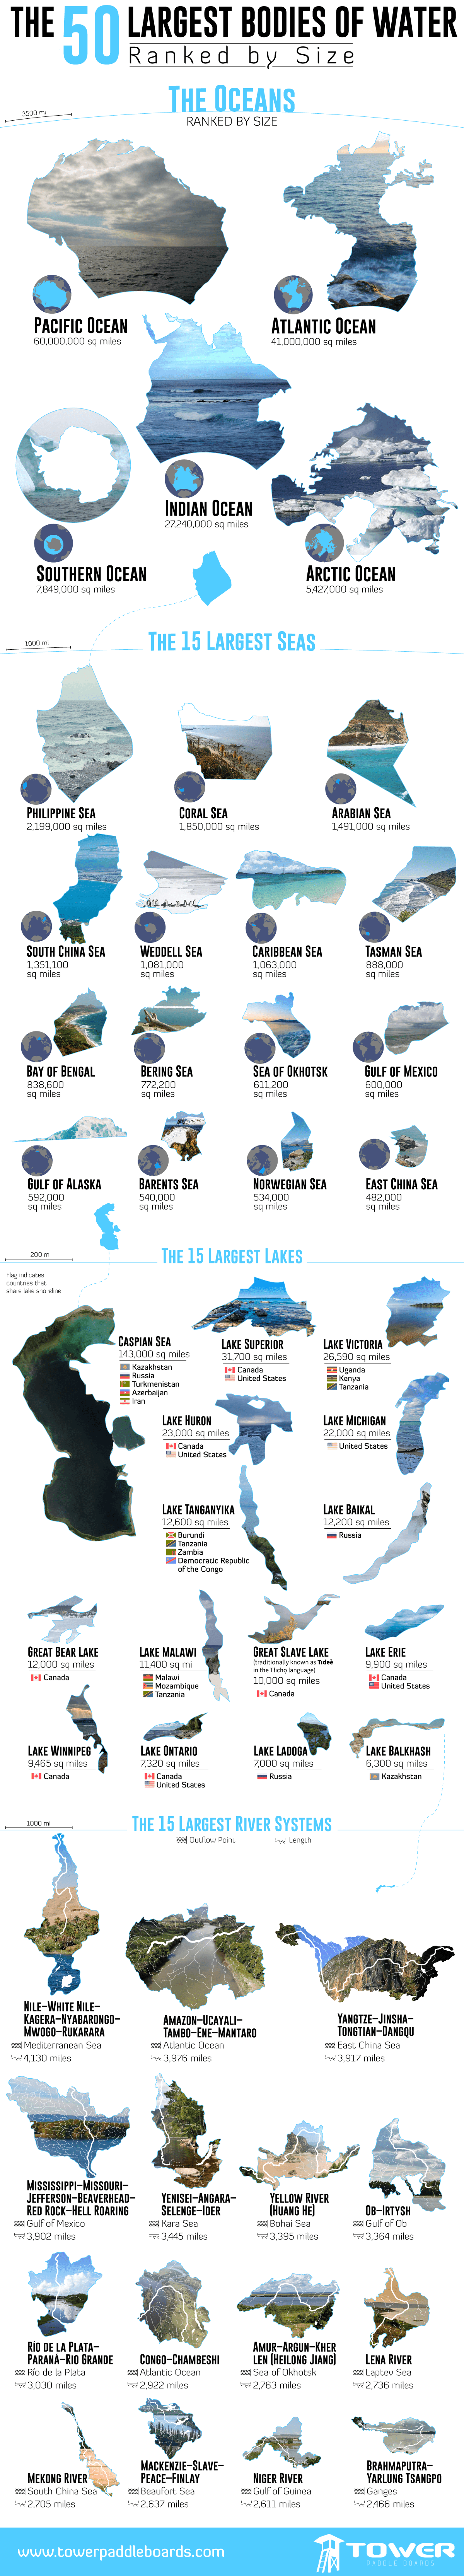 The 50 Largest Water Bodies on Earth, Ranked by Size